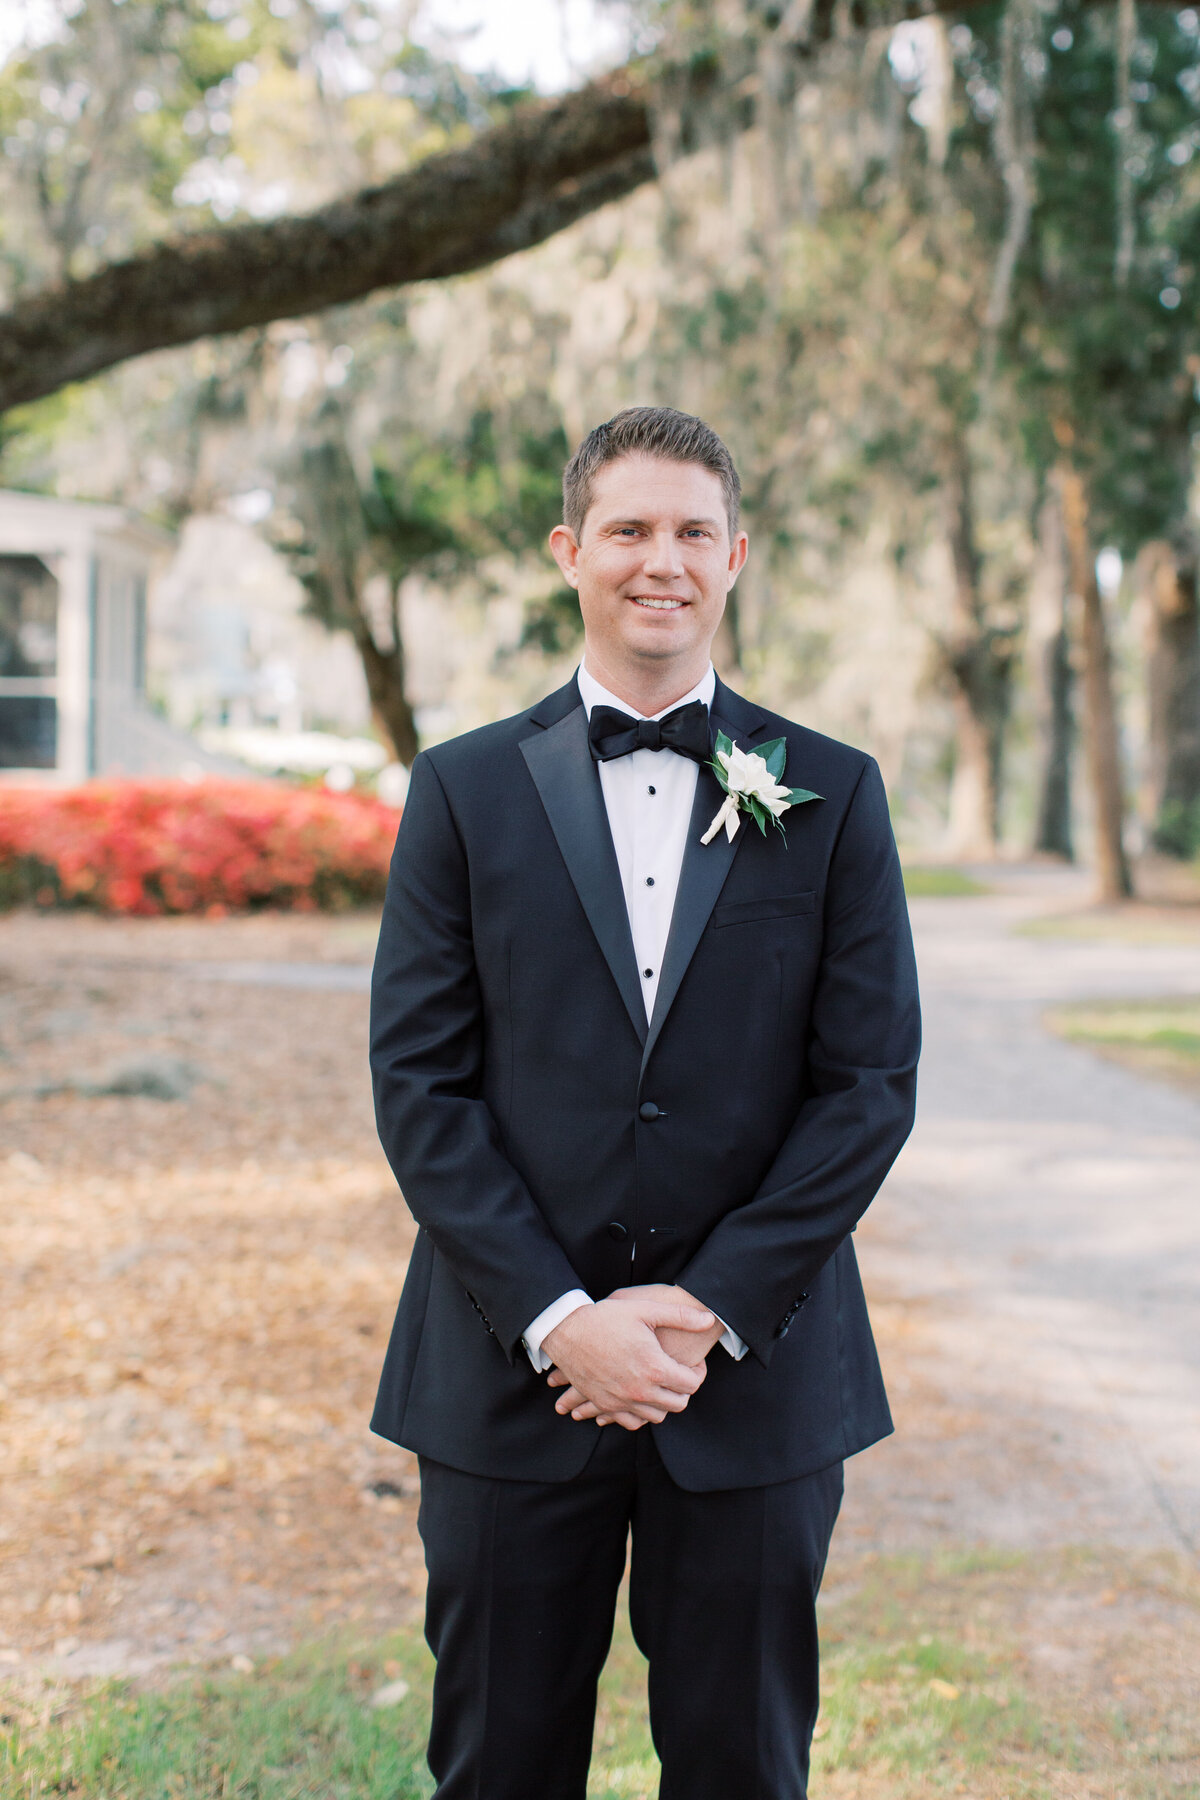 Powell_Oldfield_River_Club_Bluffton_South_Carolina_Beaufort_Savannah_Wedding_Jacksonville_Florida_Devon_Donnahoo_Photography_0334